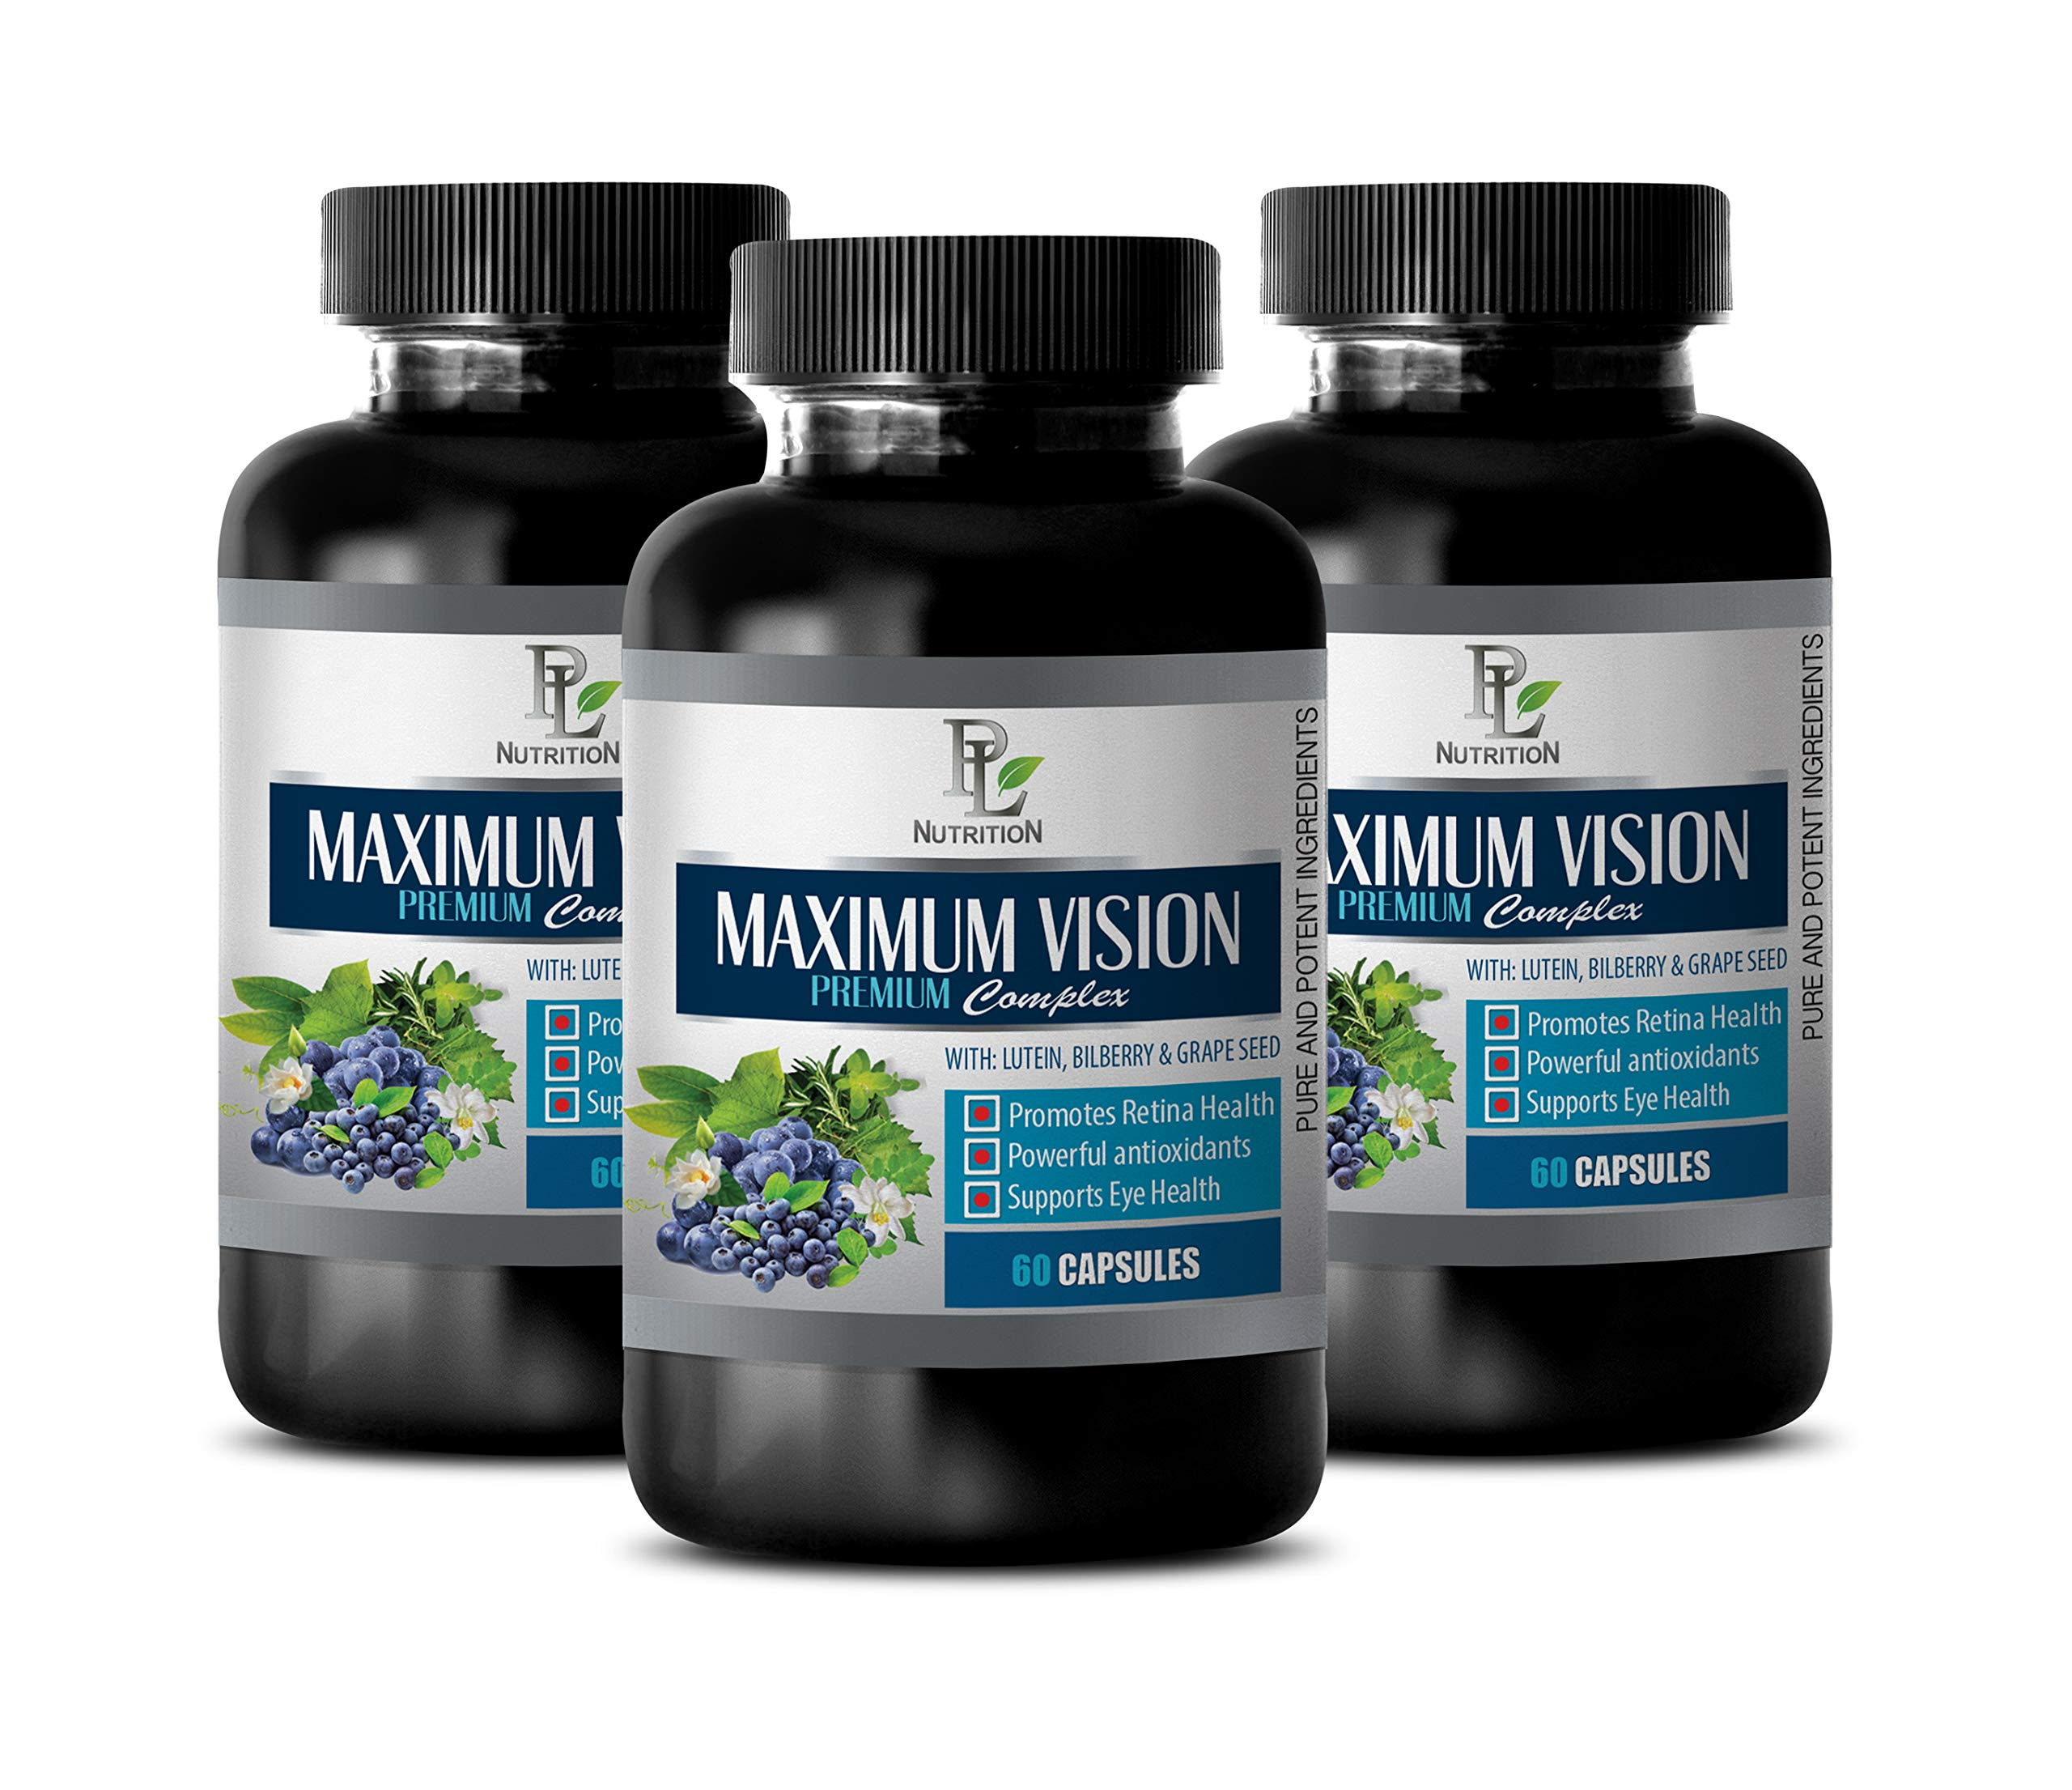 Eye Supplements for Adults Natural - Maximum Vision Premium Complex with Lutein Bilberry and Grape Seed - Grape Seed Capsules - 3 Bottle 180 Capsules